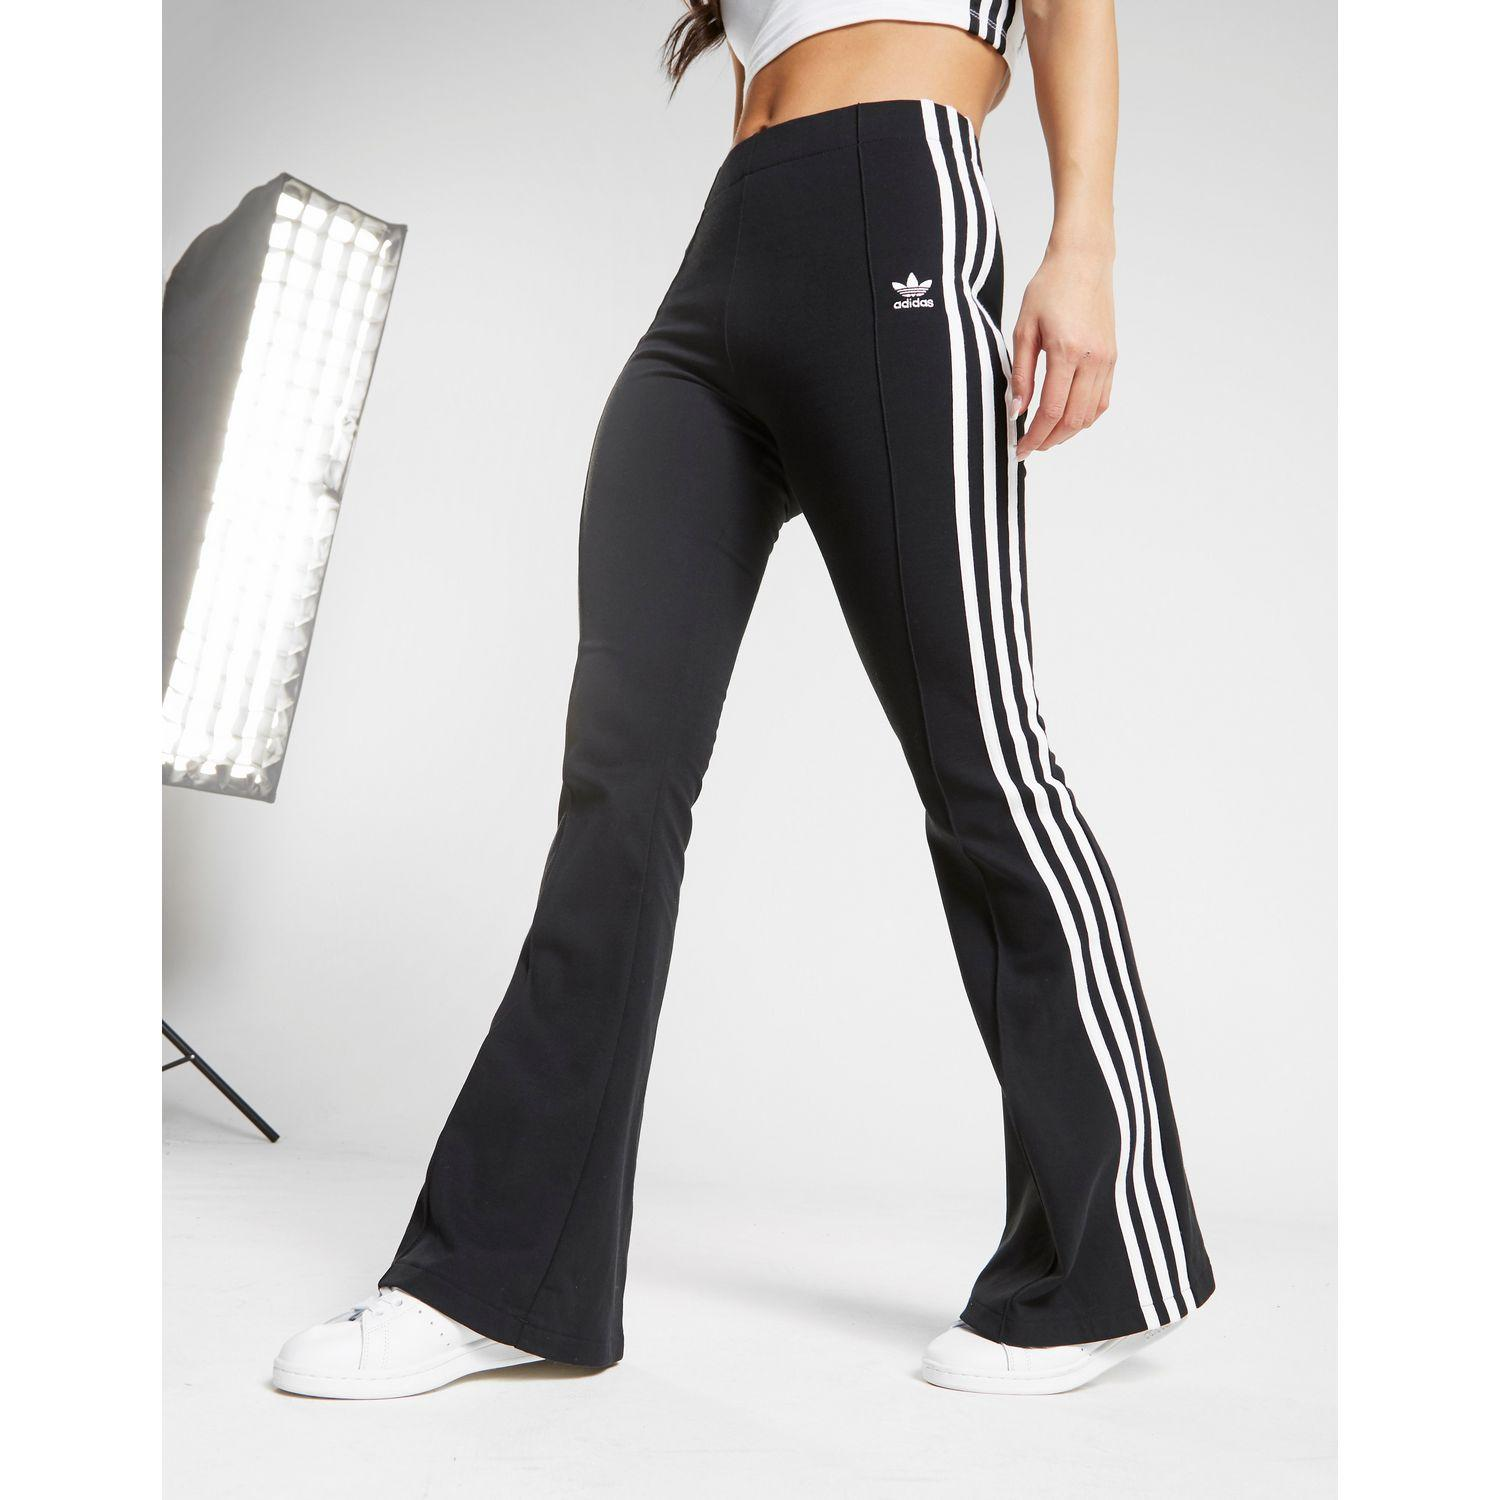 2d560770940 adidas Originals 3-stripes Flared Track Pants in Black - Lyst